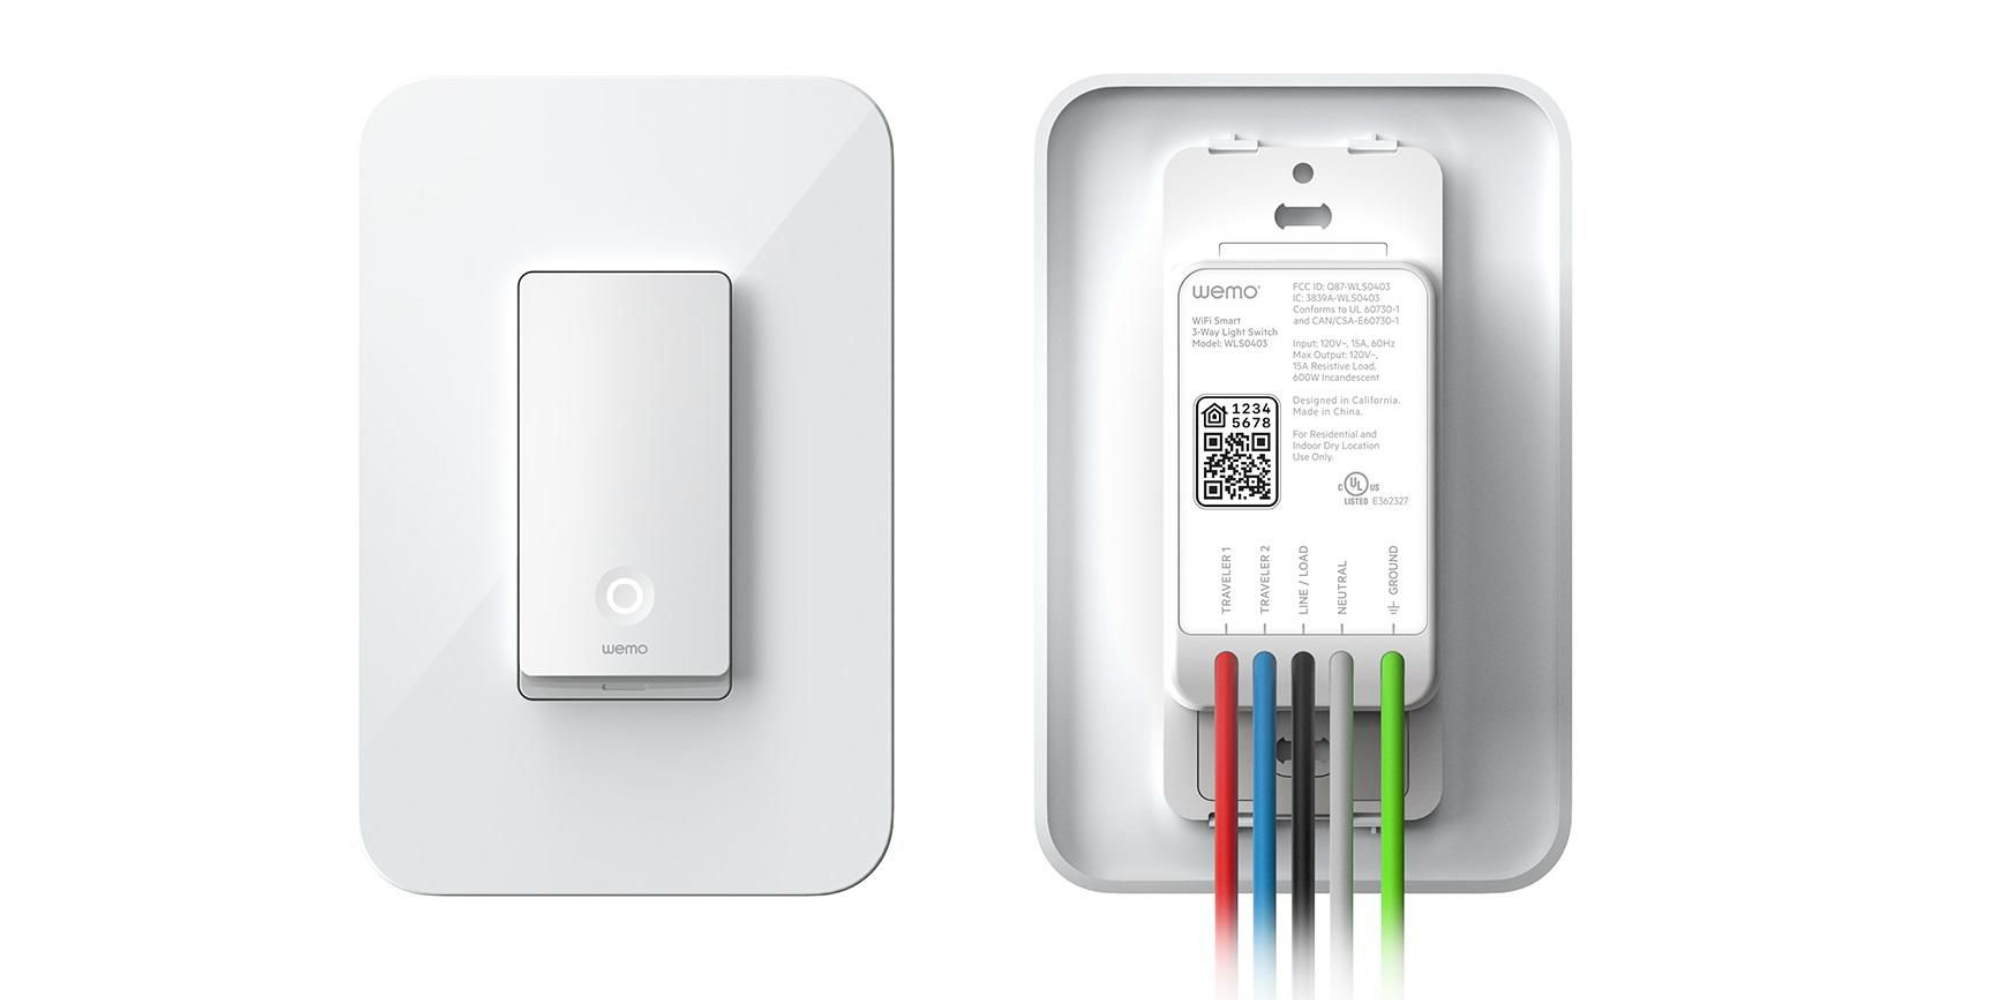 wemo homekit 3 way switch is now available for pre order 9to5toys